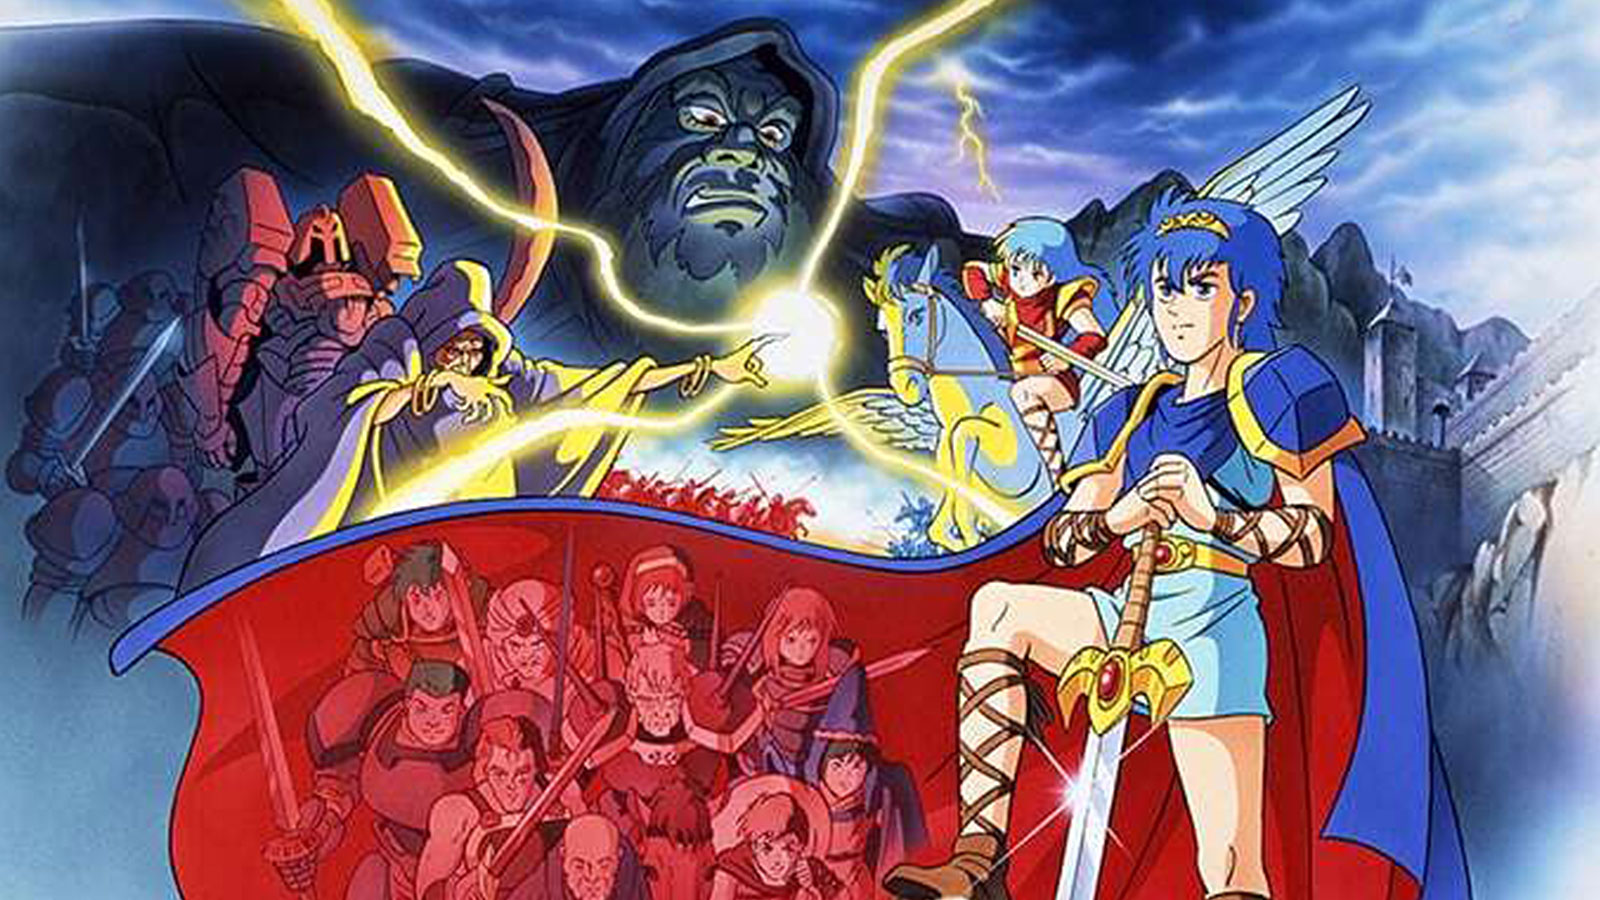 original fire emblem coming to nintendo switch